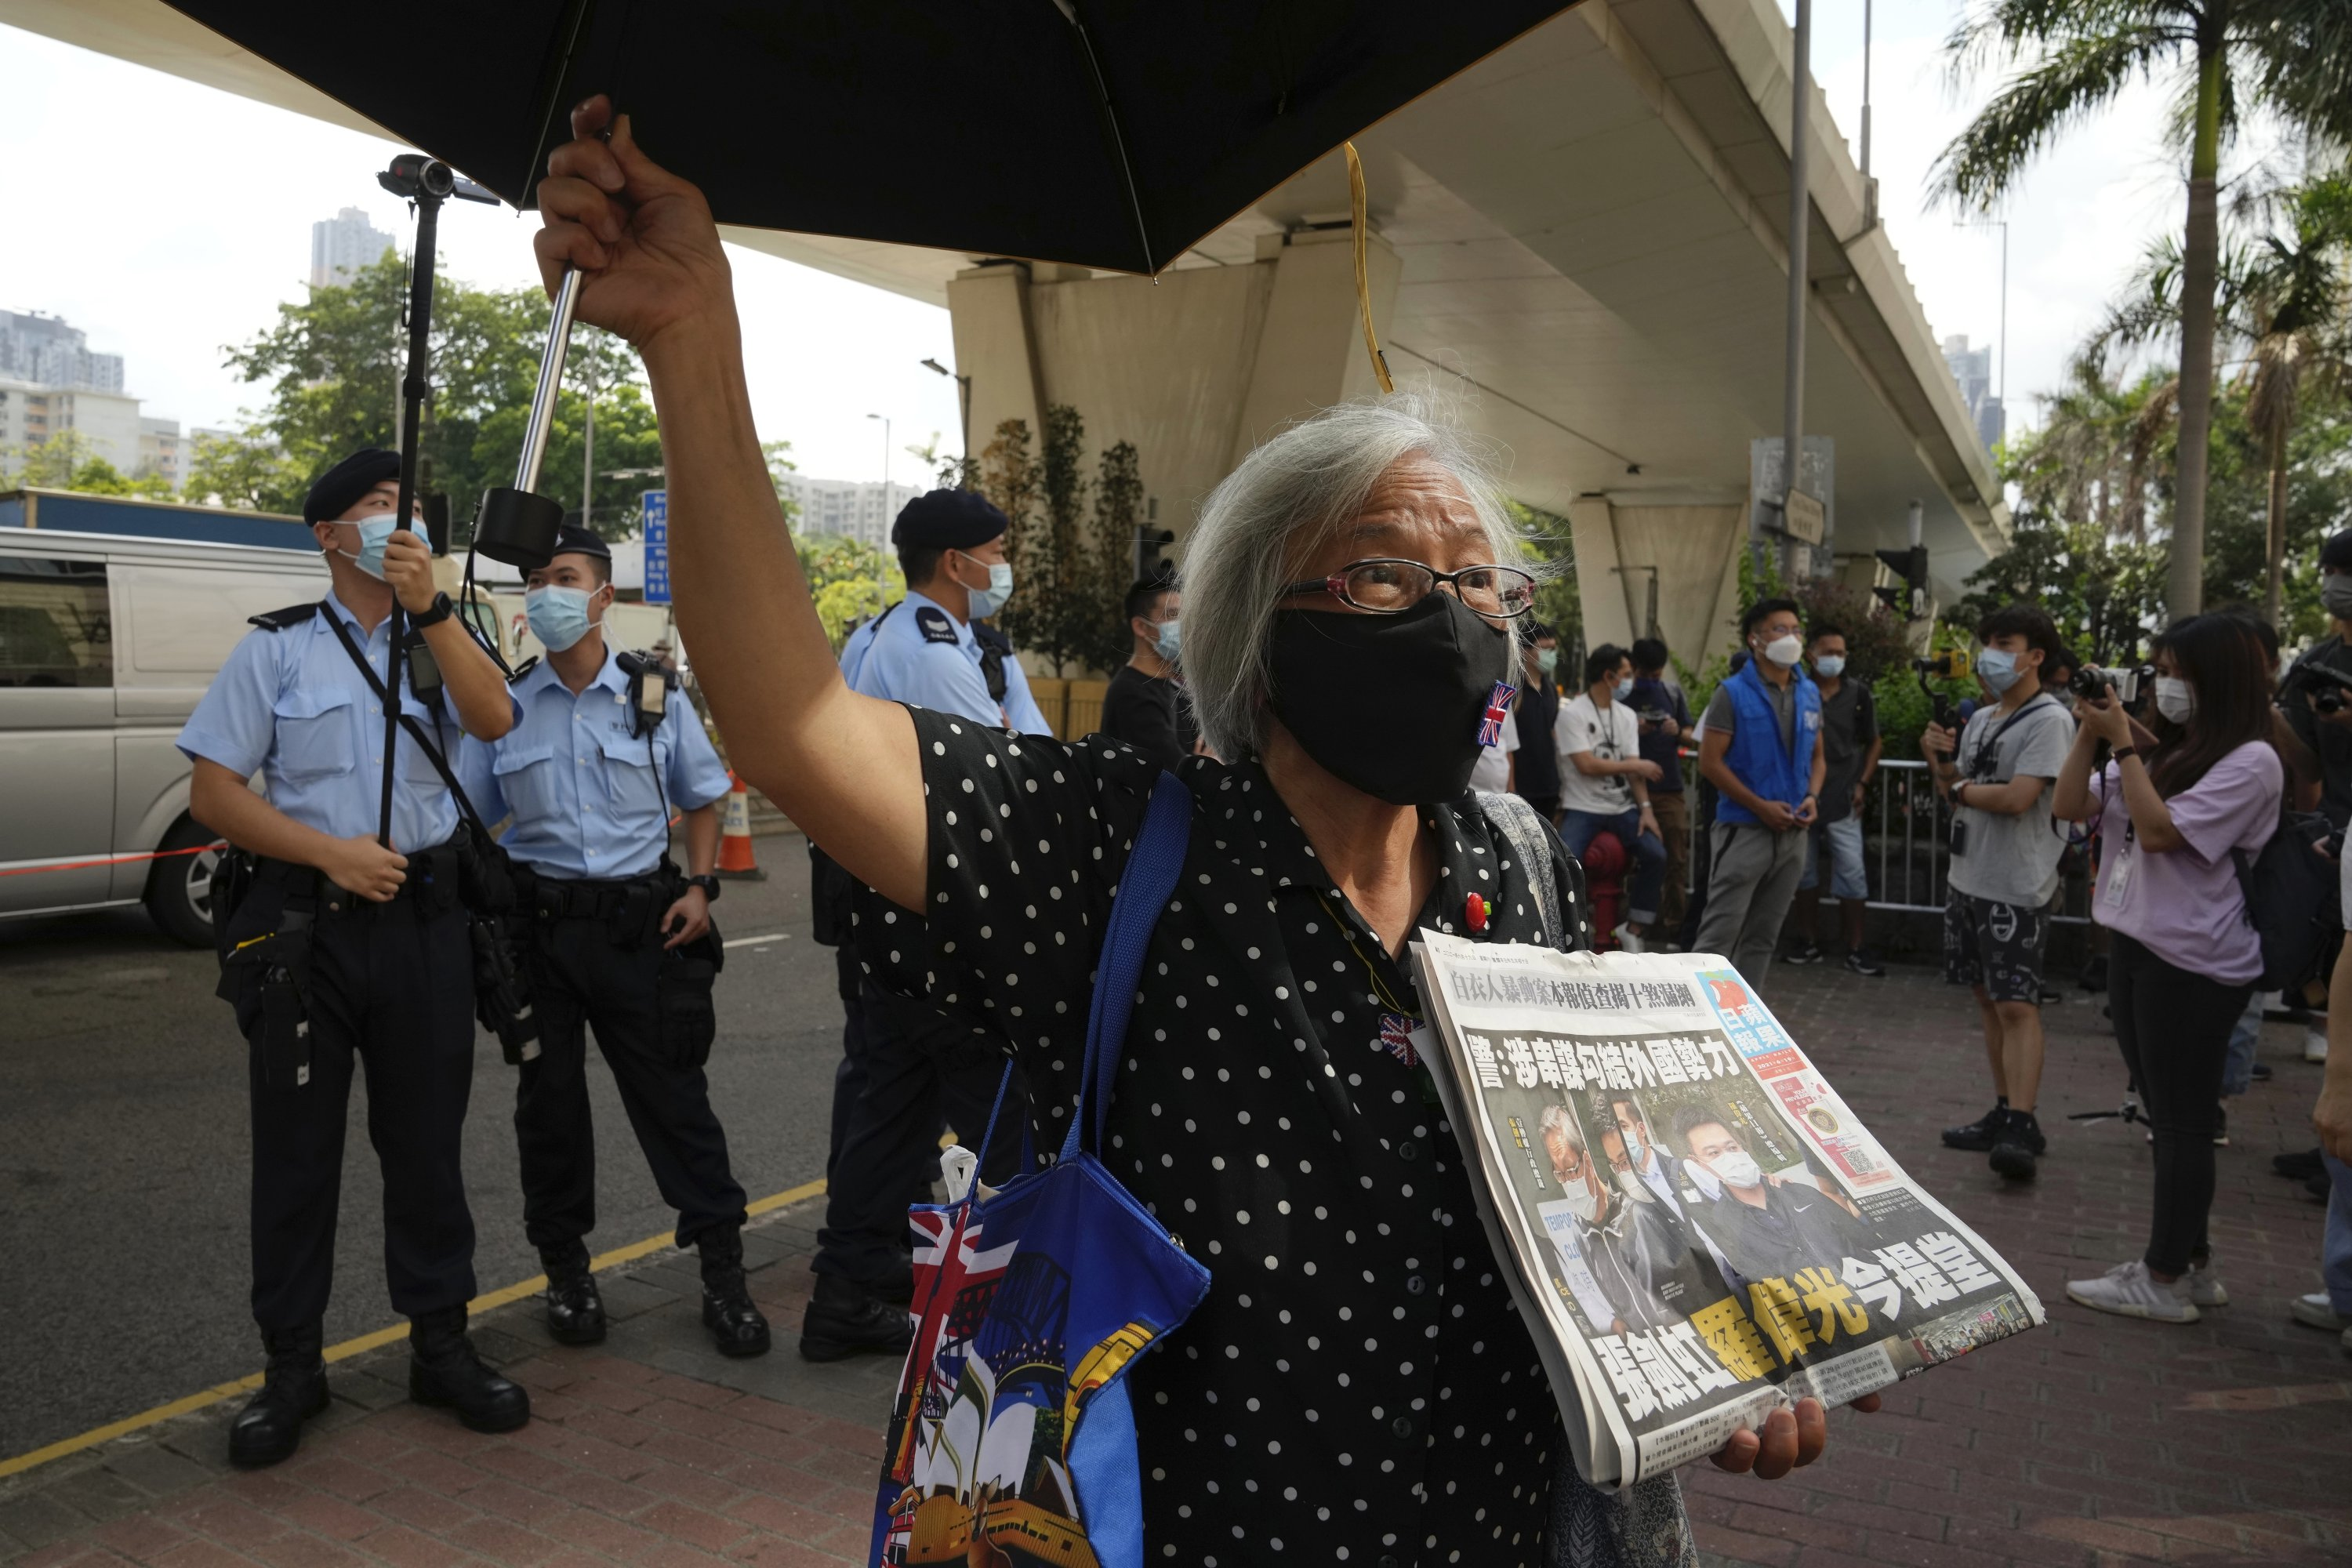 Activist Alexandra Wong, also known as Grandma Wong, holds a copy of the Apple Daily newspaper during a protest outside a court in Hong Kong, China, June 19, 2021. (AP Photo)